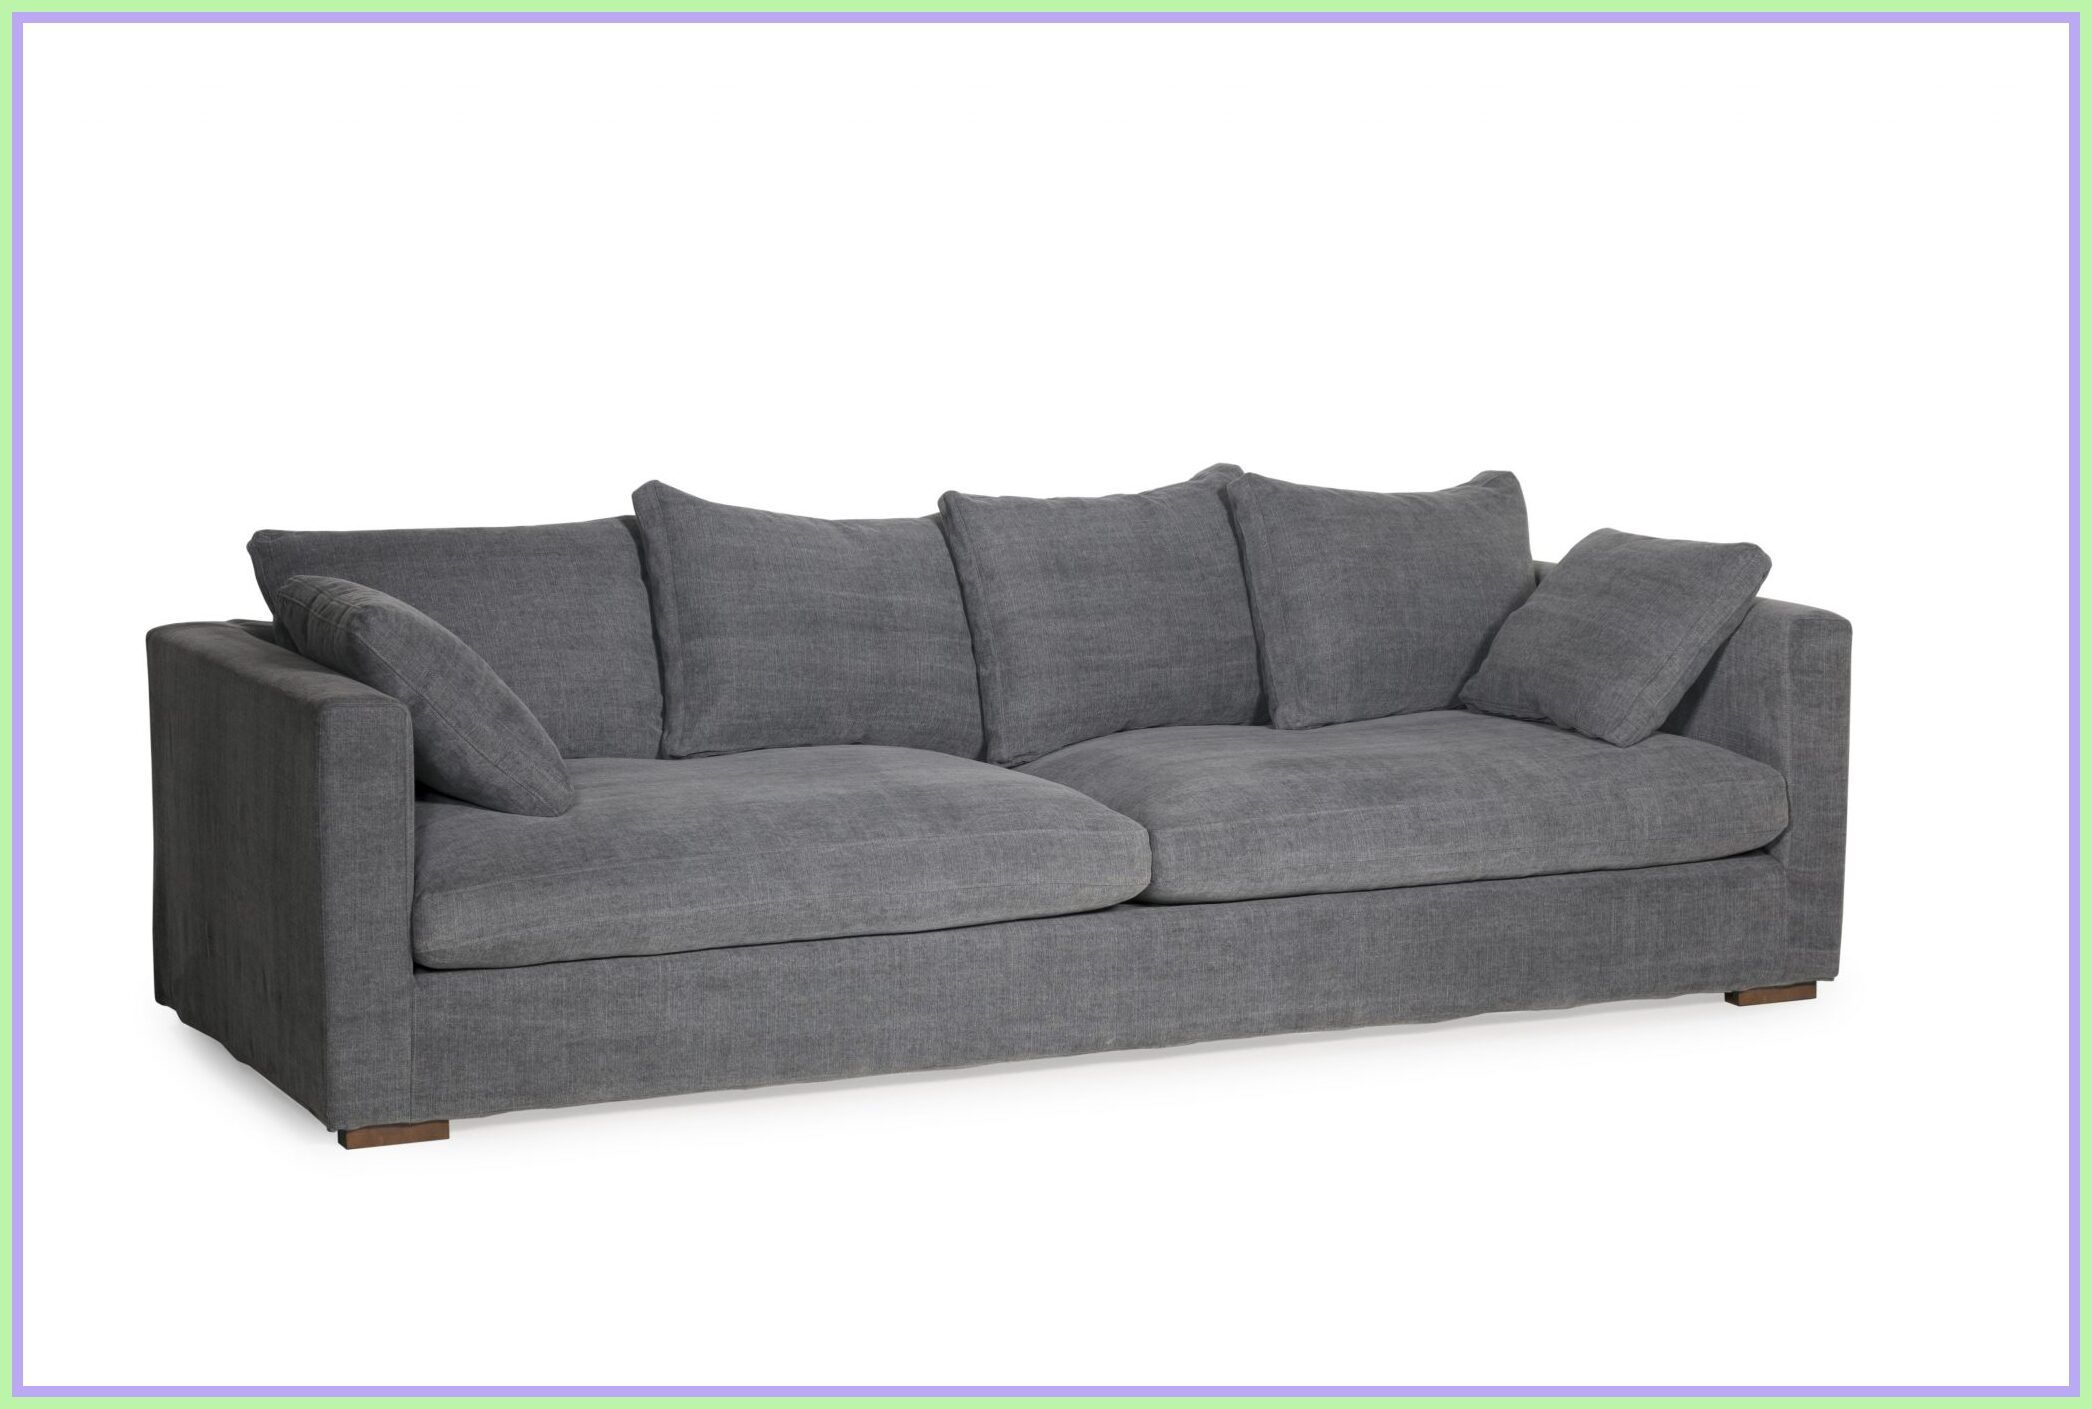 63 Reference Of Comfiest Sectional Sofa Reddit In 2020 Sectional Sofa Comfy Comfy Sectional Sectional Sofa